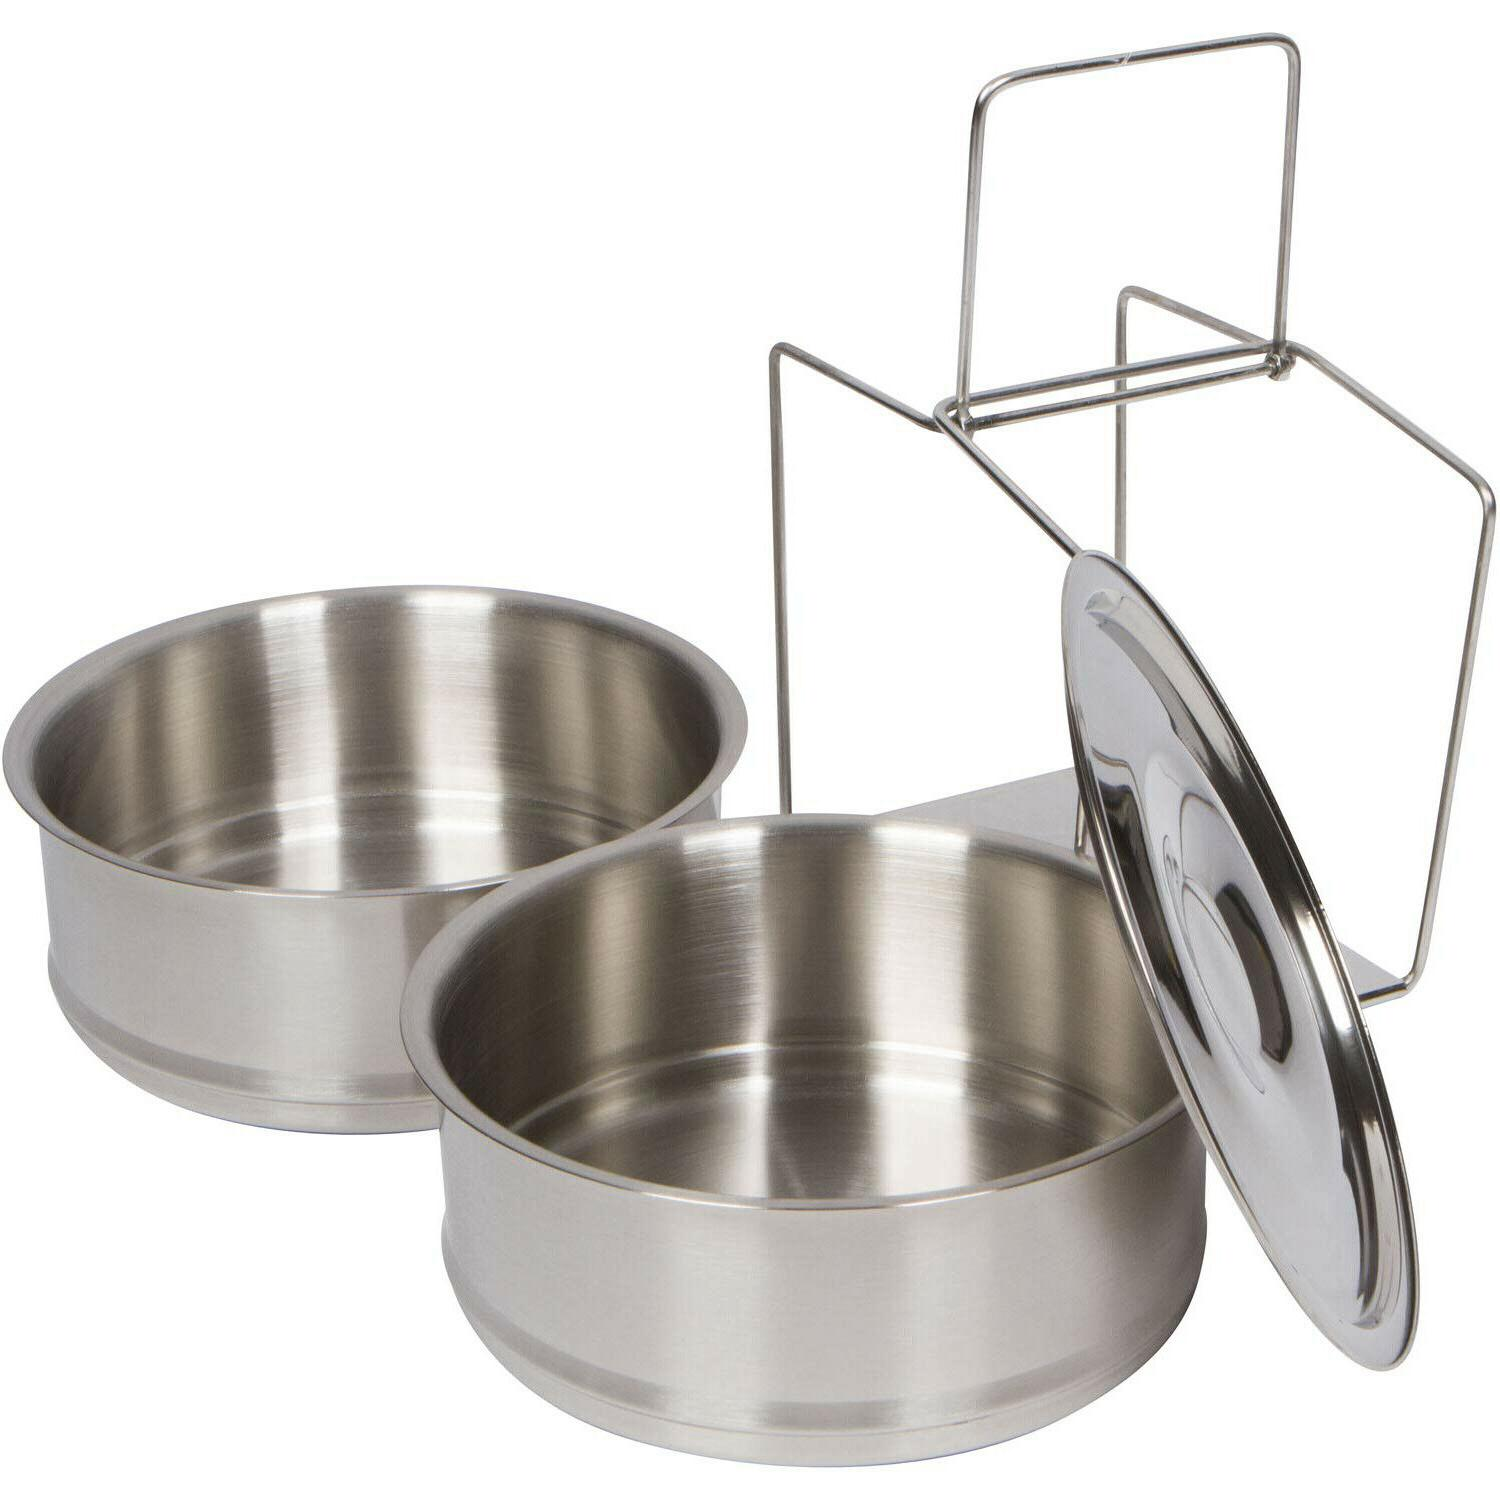 Instant -8 Stainless Steel